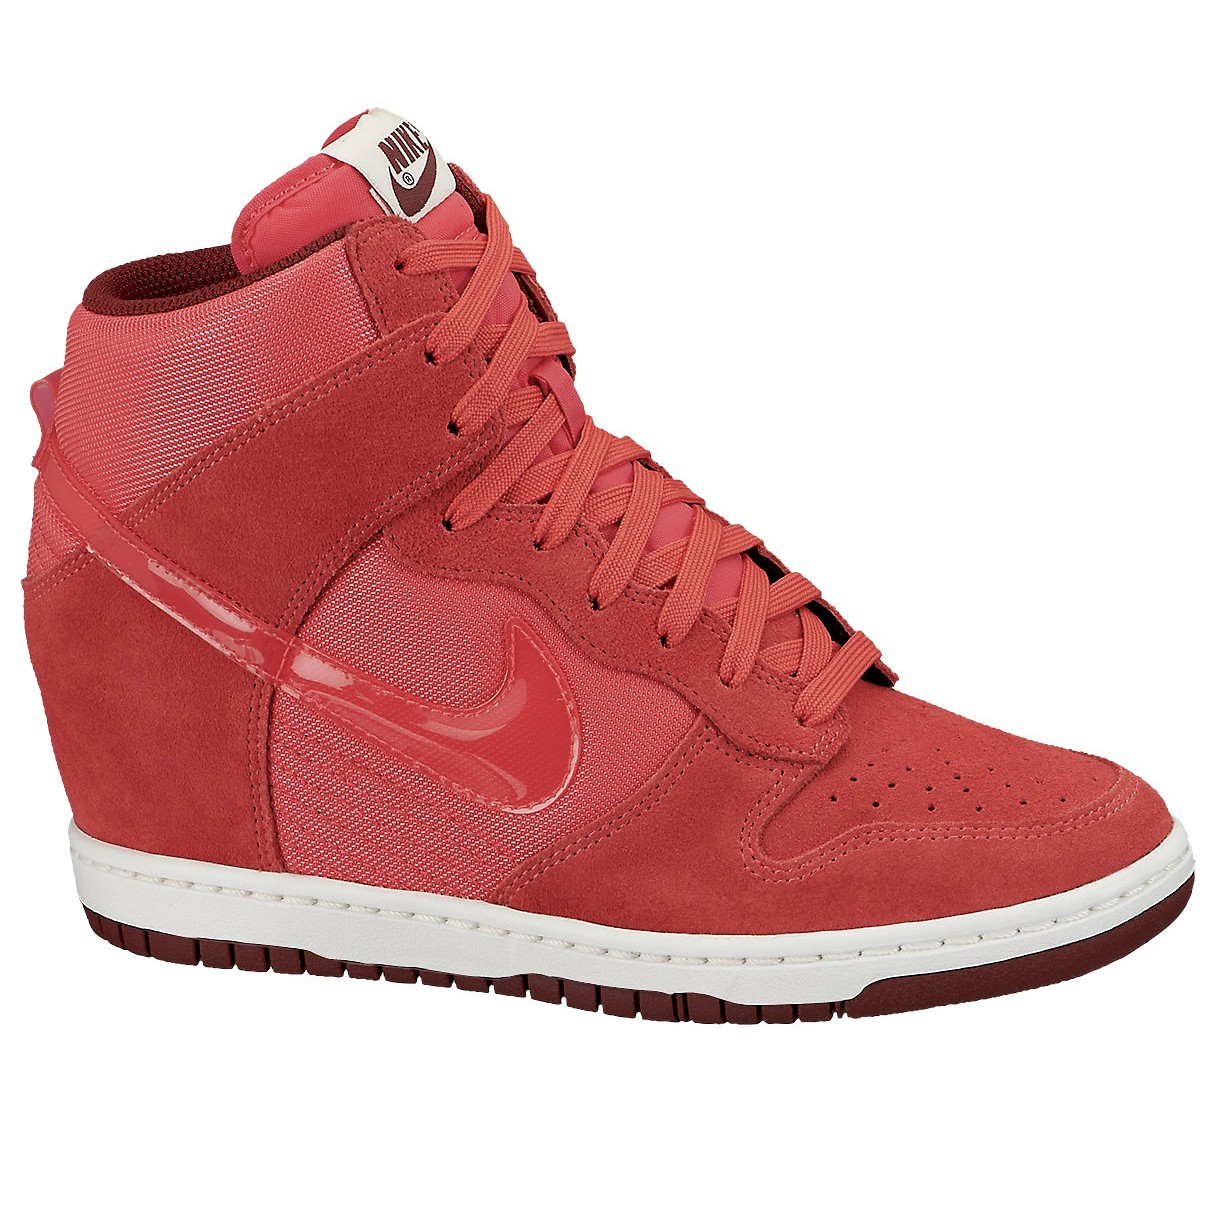 nike dunk sky hi mesh wedge trainers in red lyst. Black Bedroom Furniture Sets. Home Design Ideas